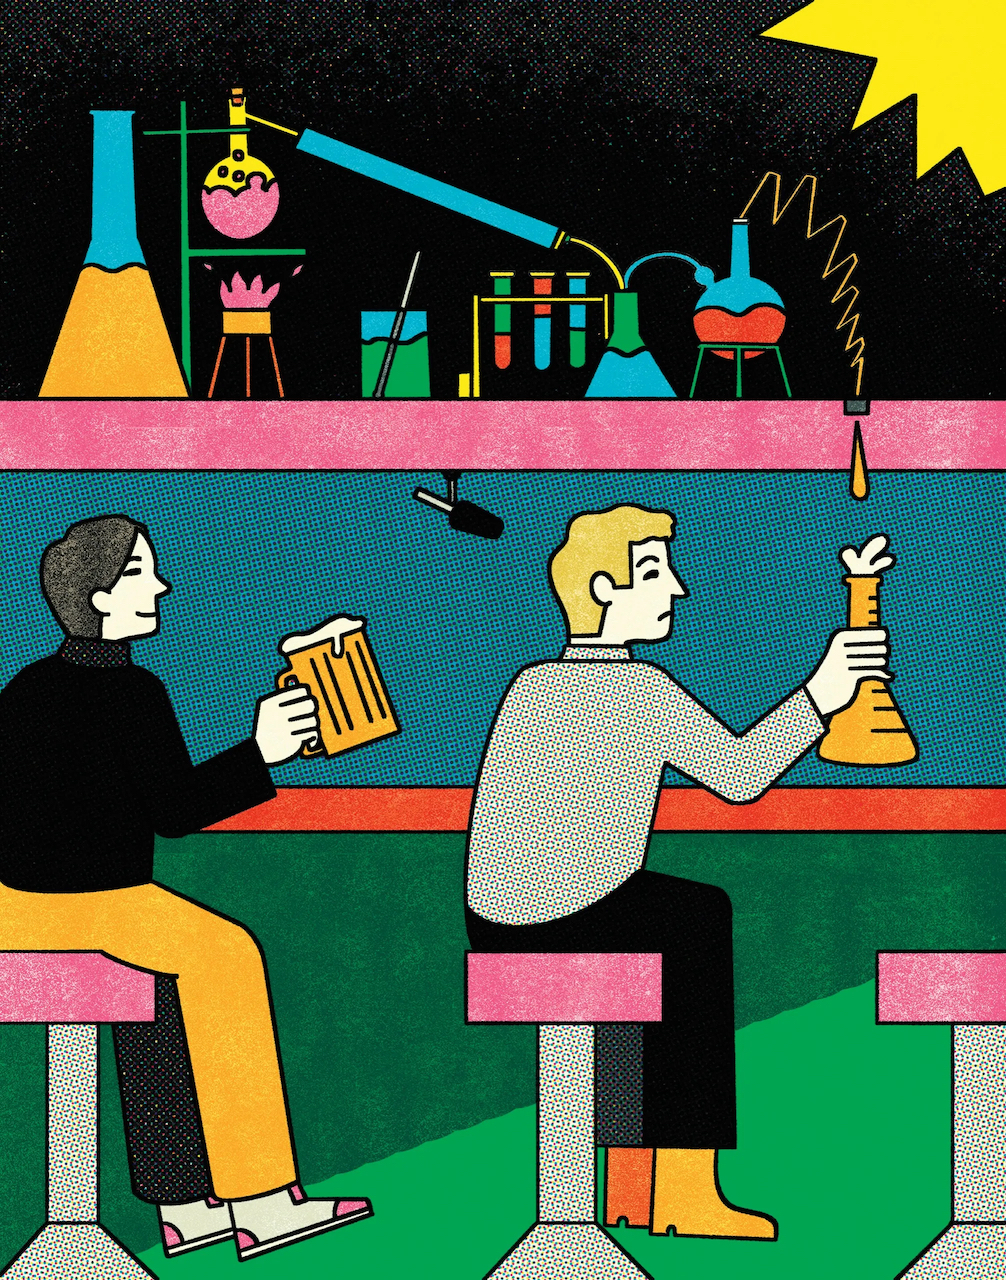 The New Yorker, one of America's most renowned and long-running magazines, mentions Noughty as part of its focus on AF drinking. Written by John Seabrook, a contributor to the magazine since 1989, the piece looks at how those who have chosen to stop drinking alcohol can navigate the increasing choice of alcohol-free beer, wine and spirits on offer.